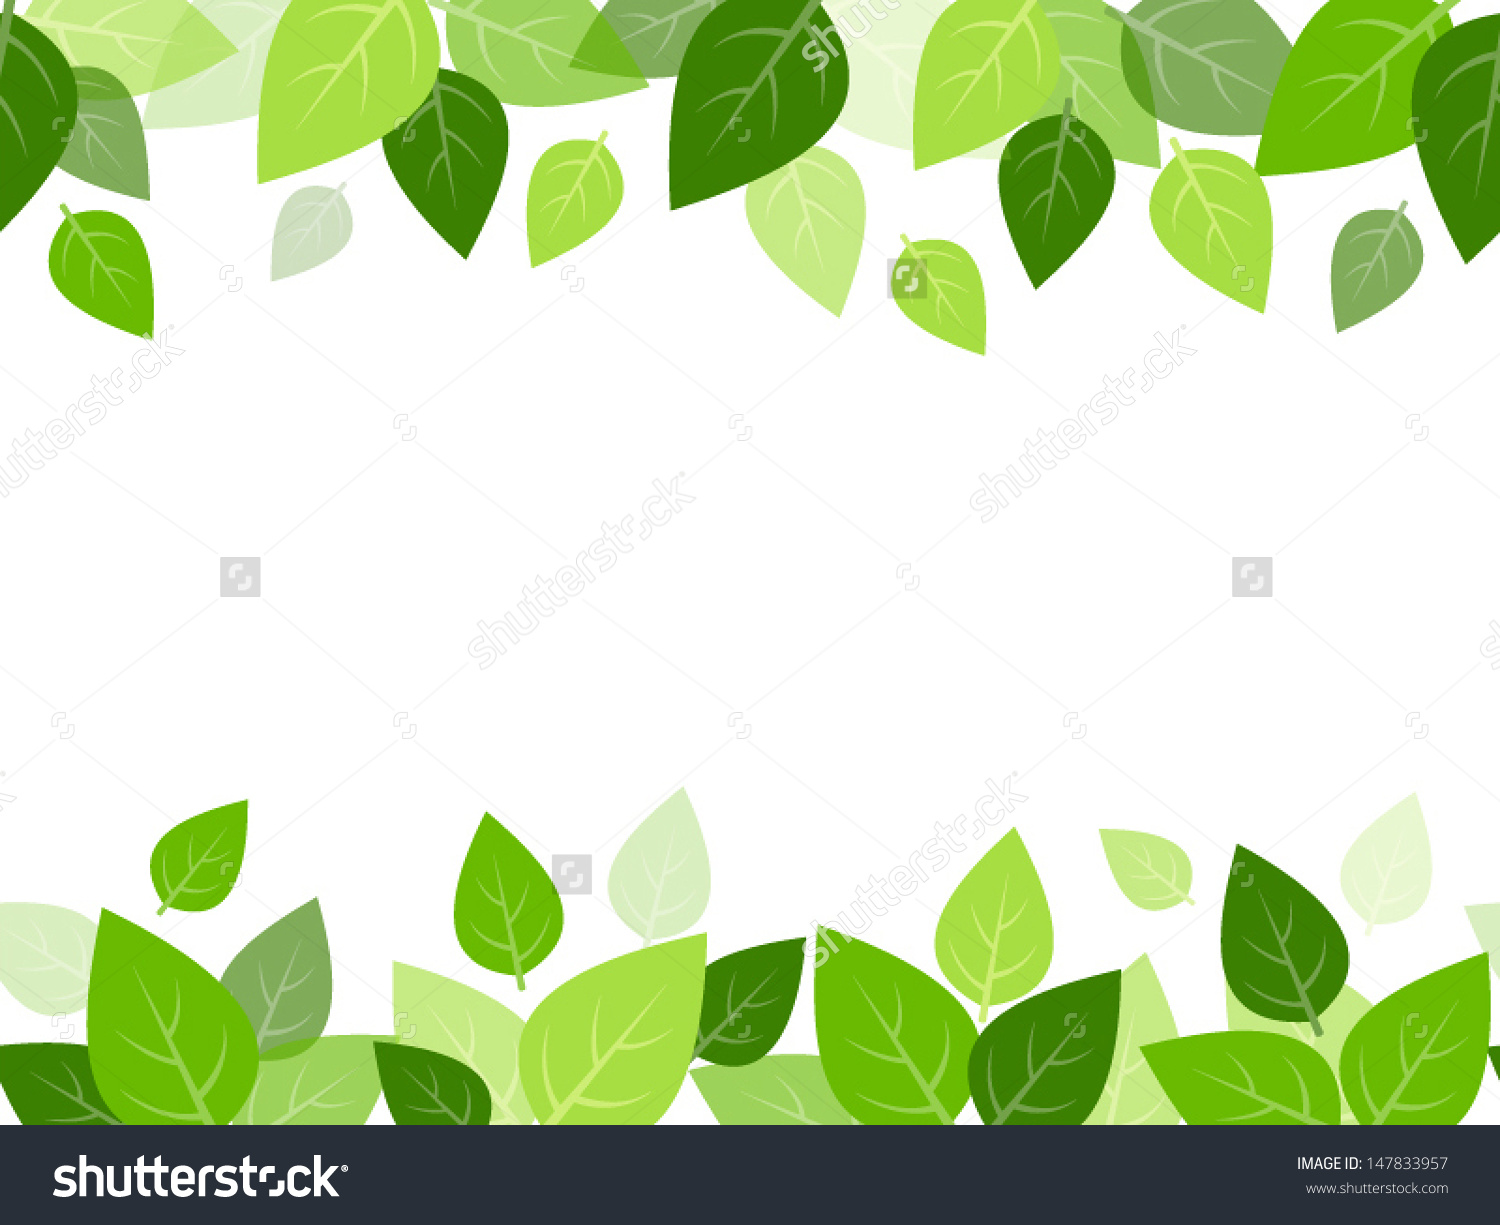 Horizontal Seamless Background Green Leaves Vector Stock Vector.